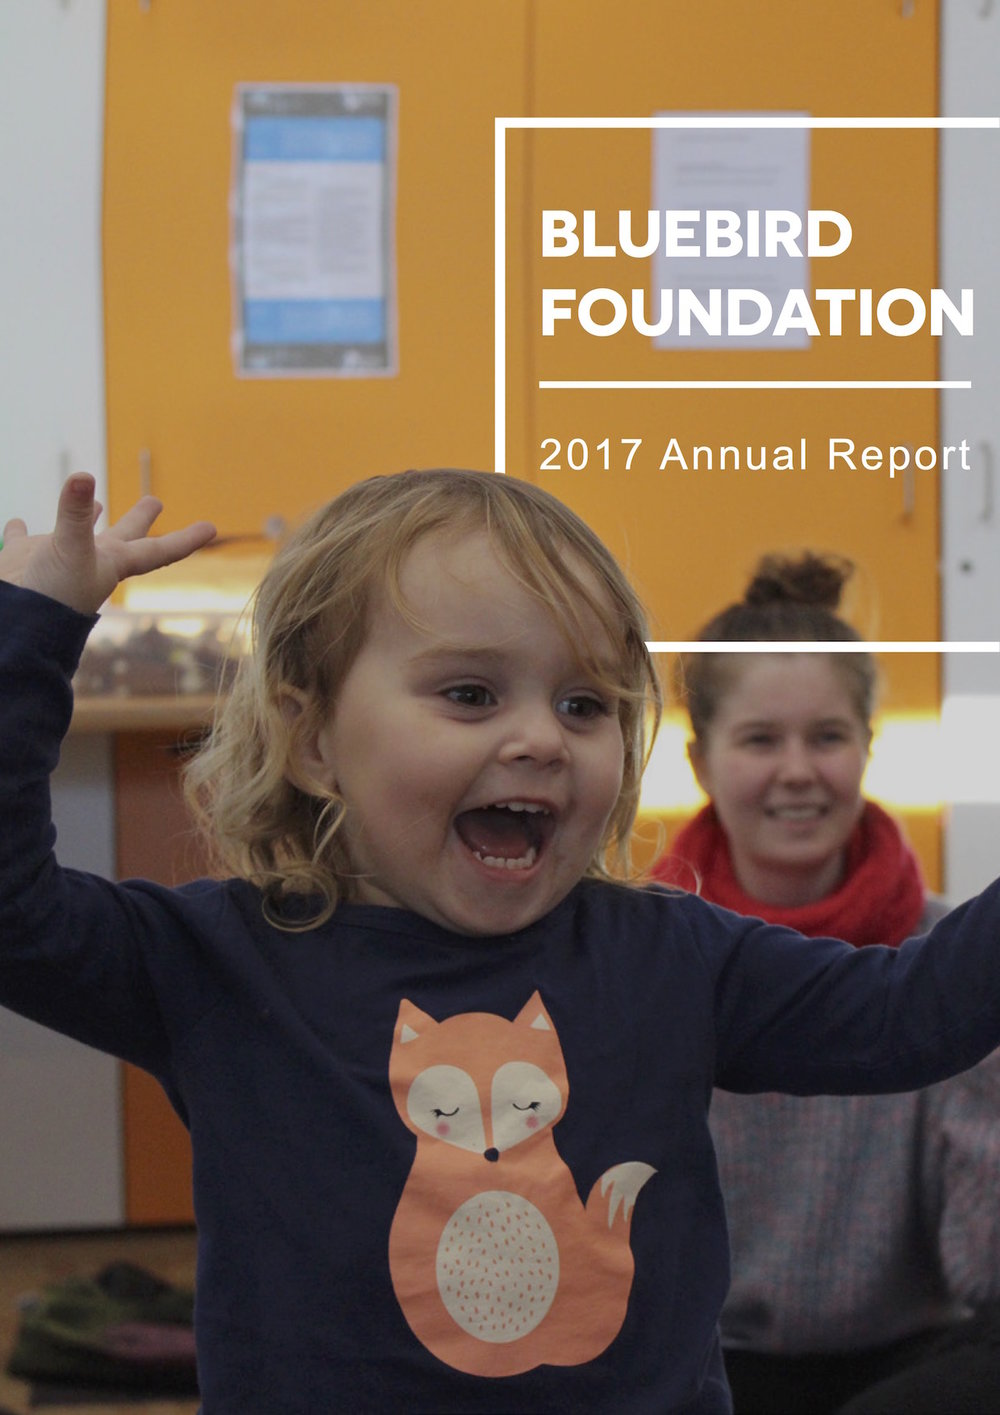 Bluebird Foundation 2017 Annual Report